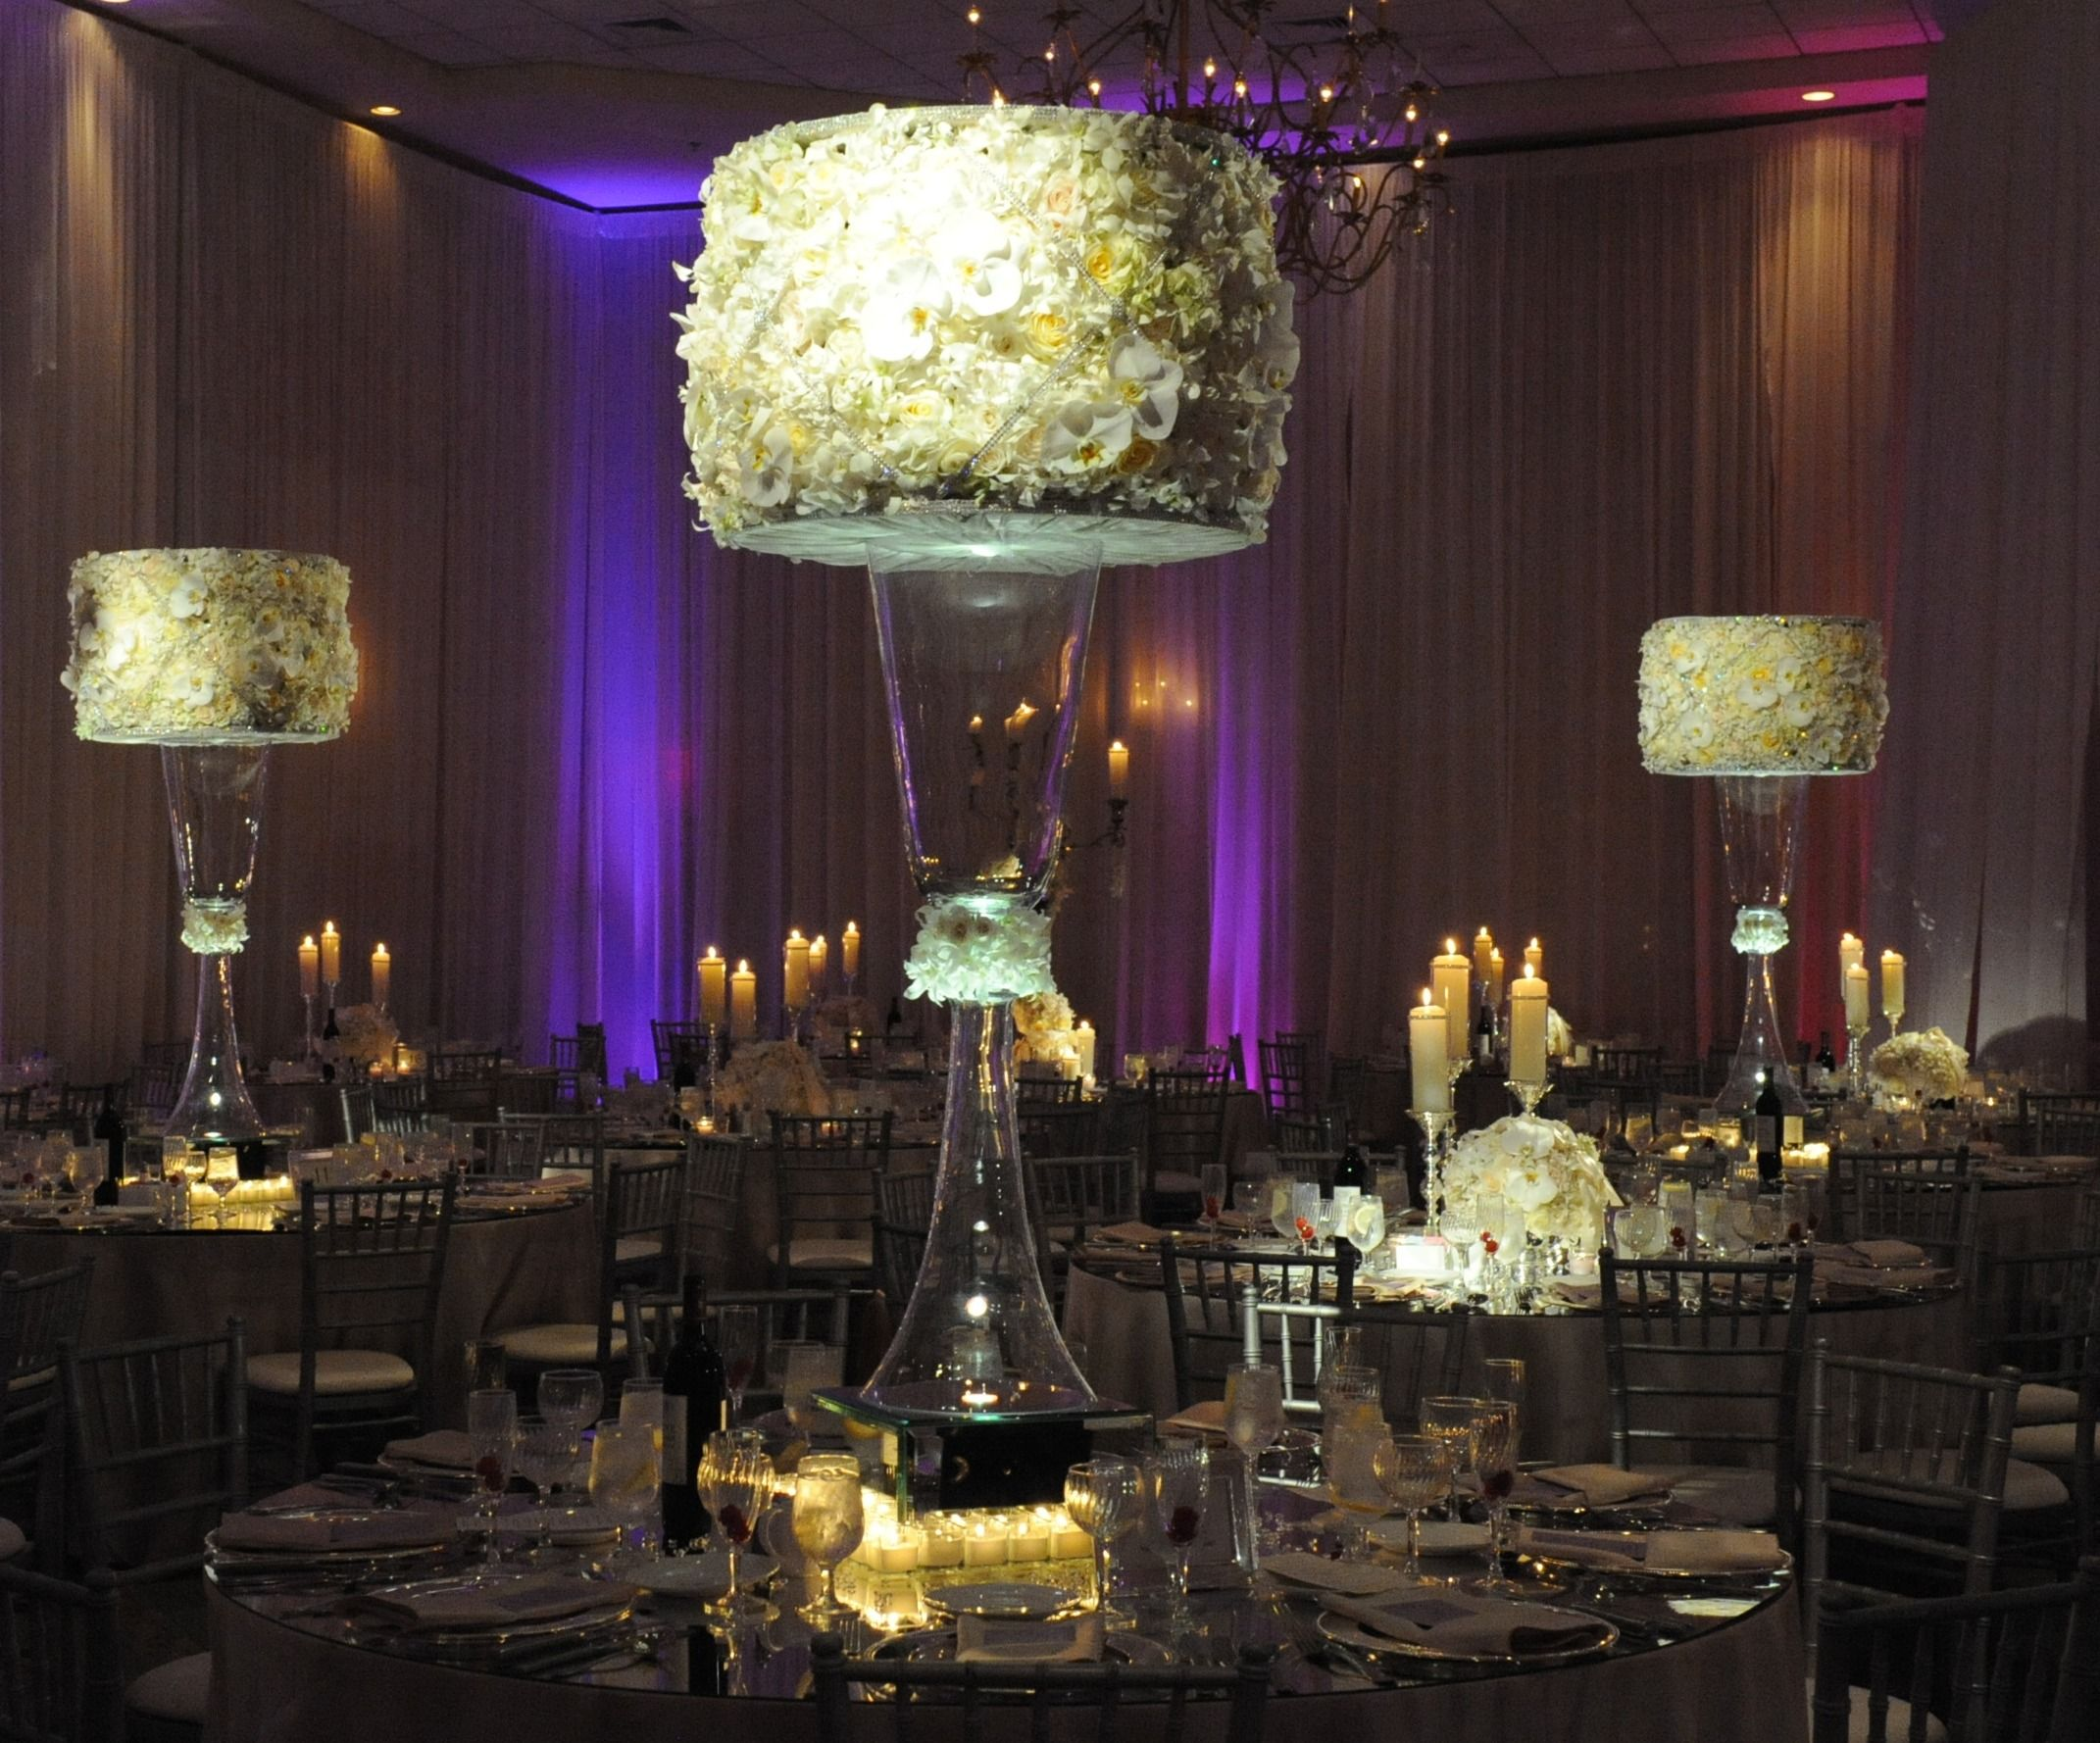 Ordinaire Large White Table Centerpiece With Glowing Mirror Box. #wedding #flowers  #decor